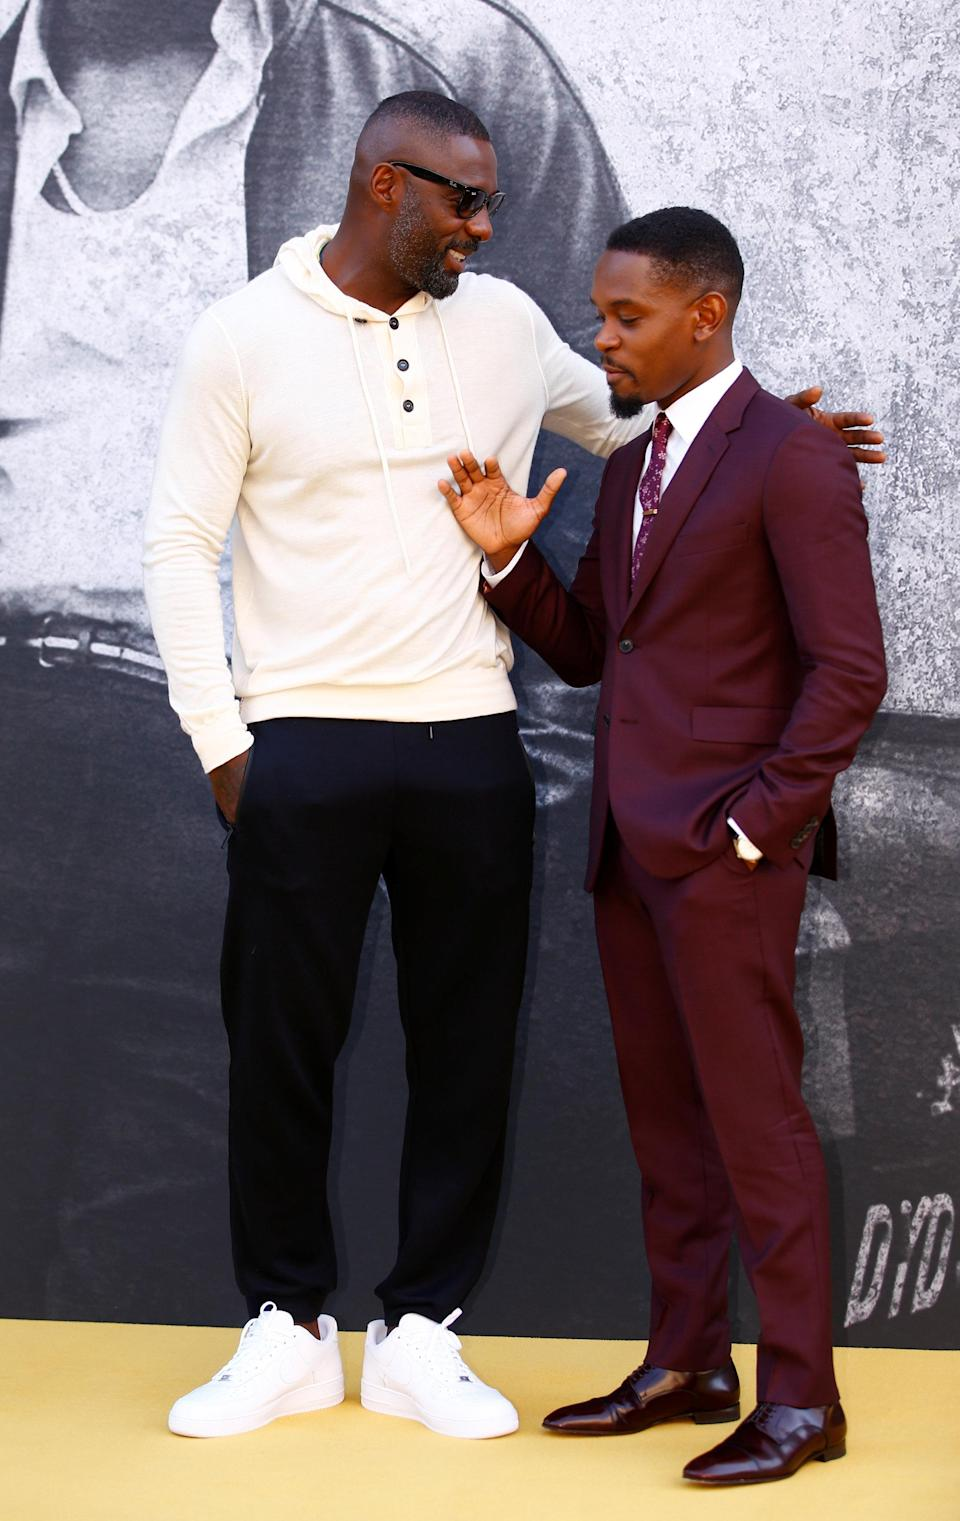 Director Idris Elba and cast member Aml Ameen attend the film premiere of 'Yardie' at the BFI Southbank, London, Britain August 21 2018. REUTERS/Henry Nicholls